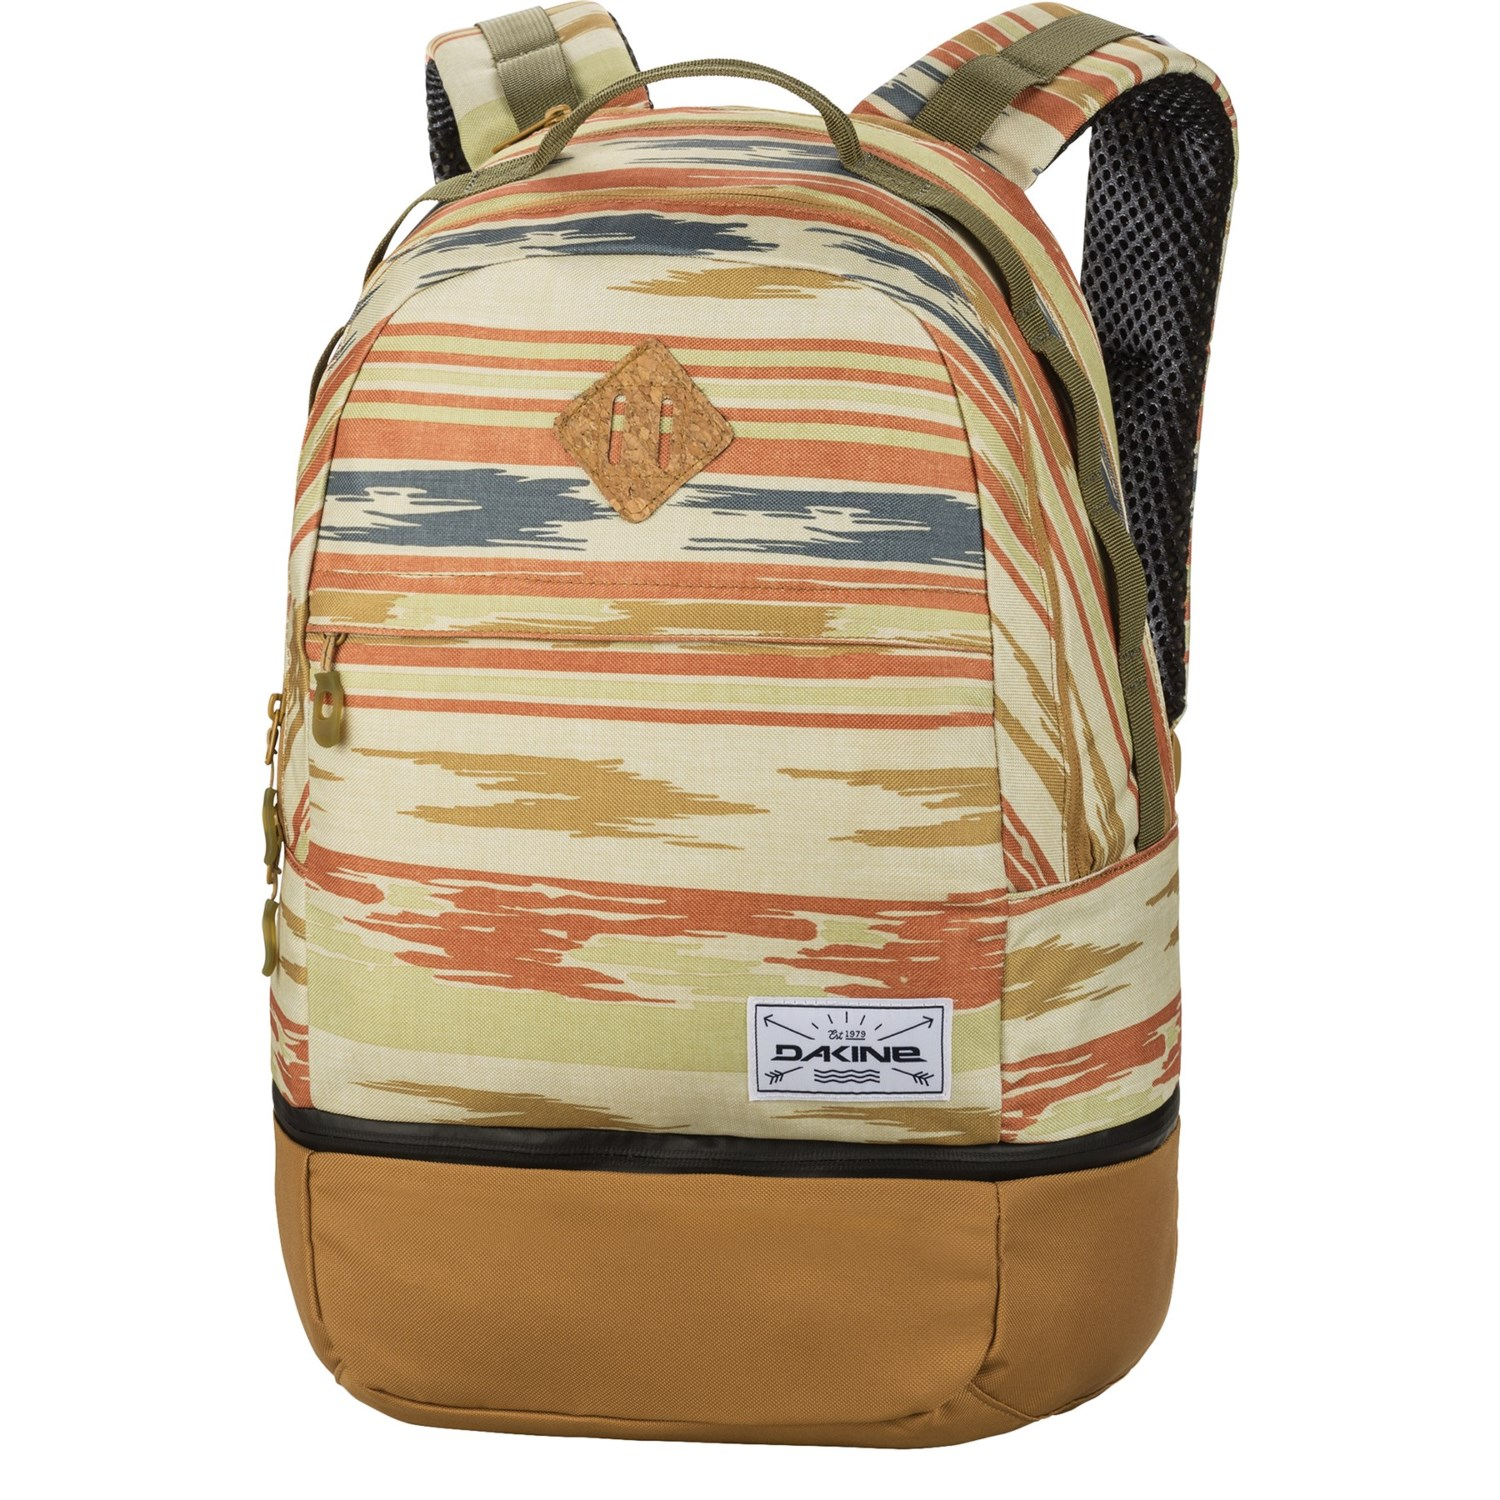 DaKine Interval Wet-Dry Backpack - 24L - Save 23%